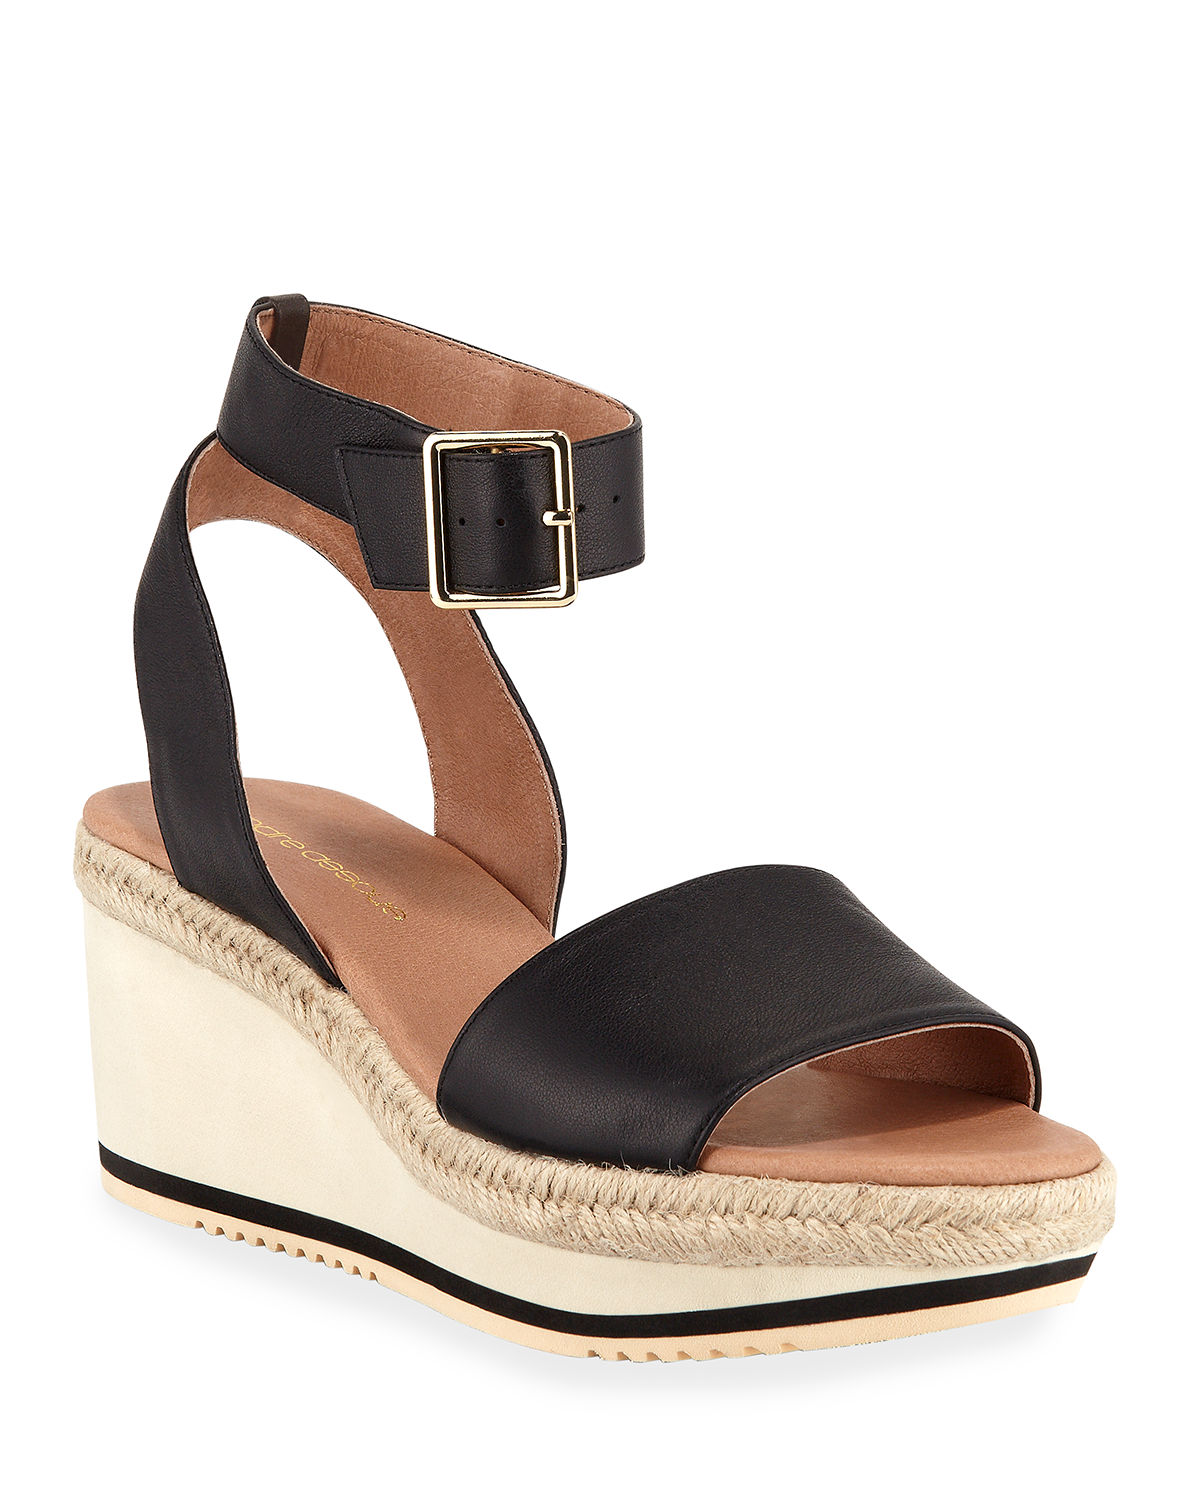 Andre Assous Sandals PETRA ANKLE-STRAP LEATHER WEDGE SANDALS